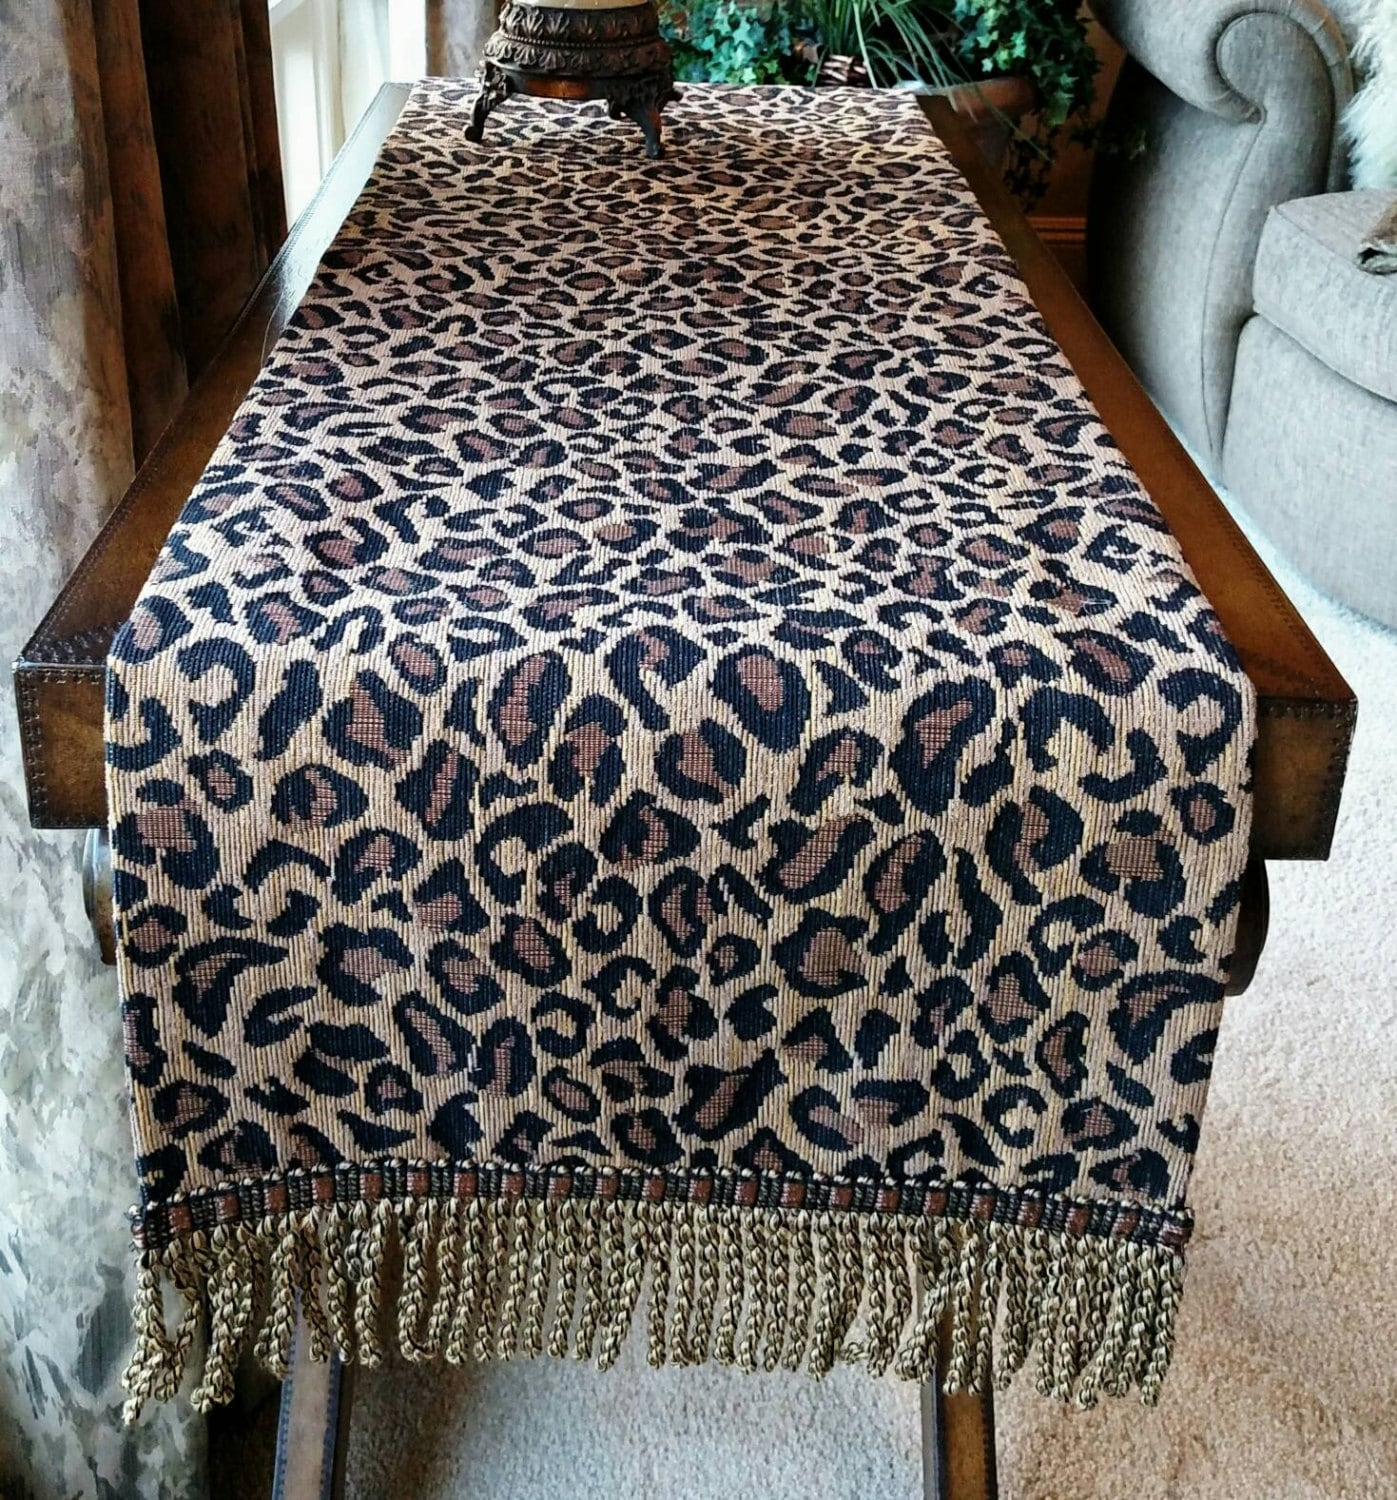 Zebra Print Kitchen Decor: Leopard Print Table Runner Home Decor Kitchen By